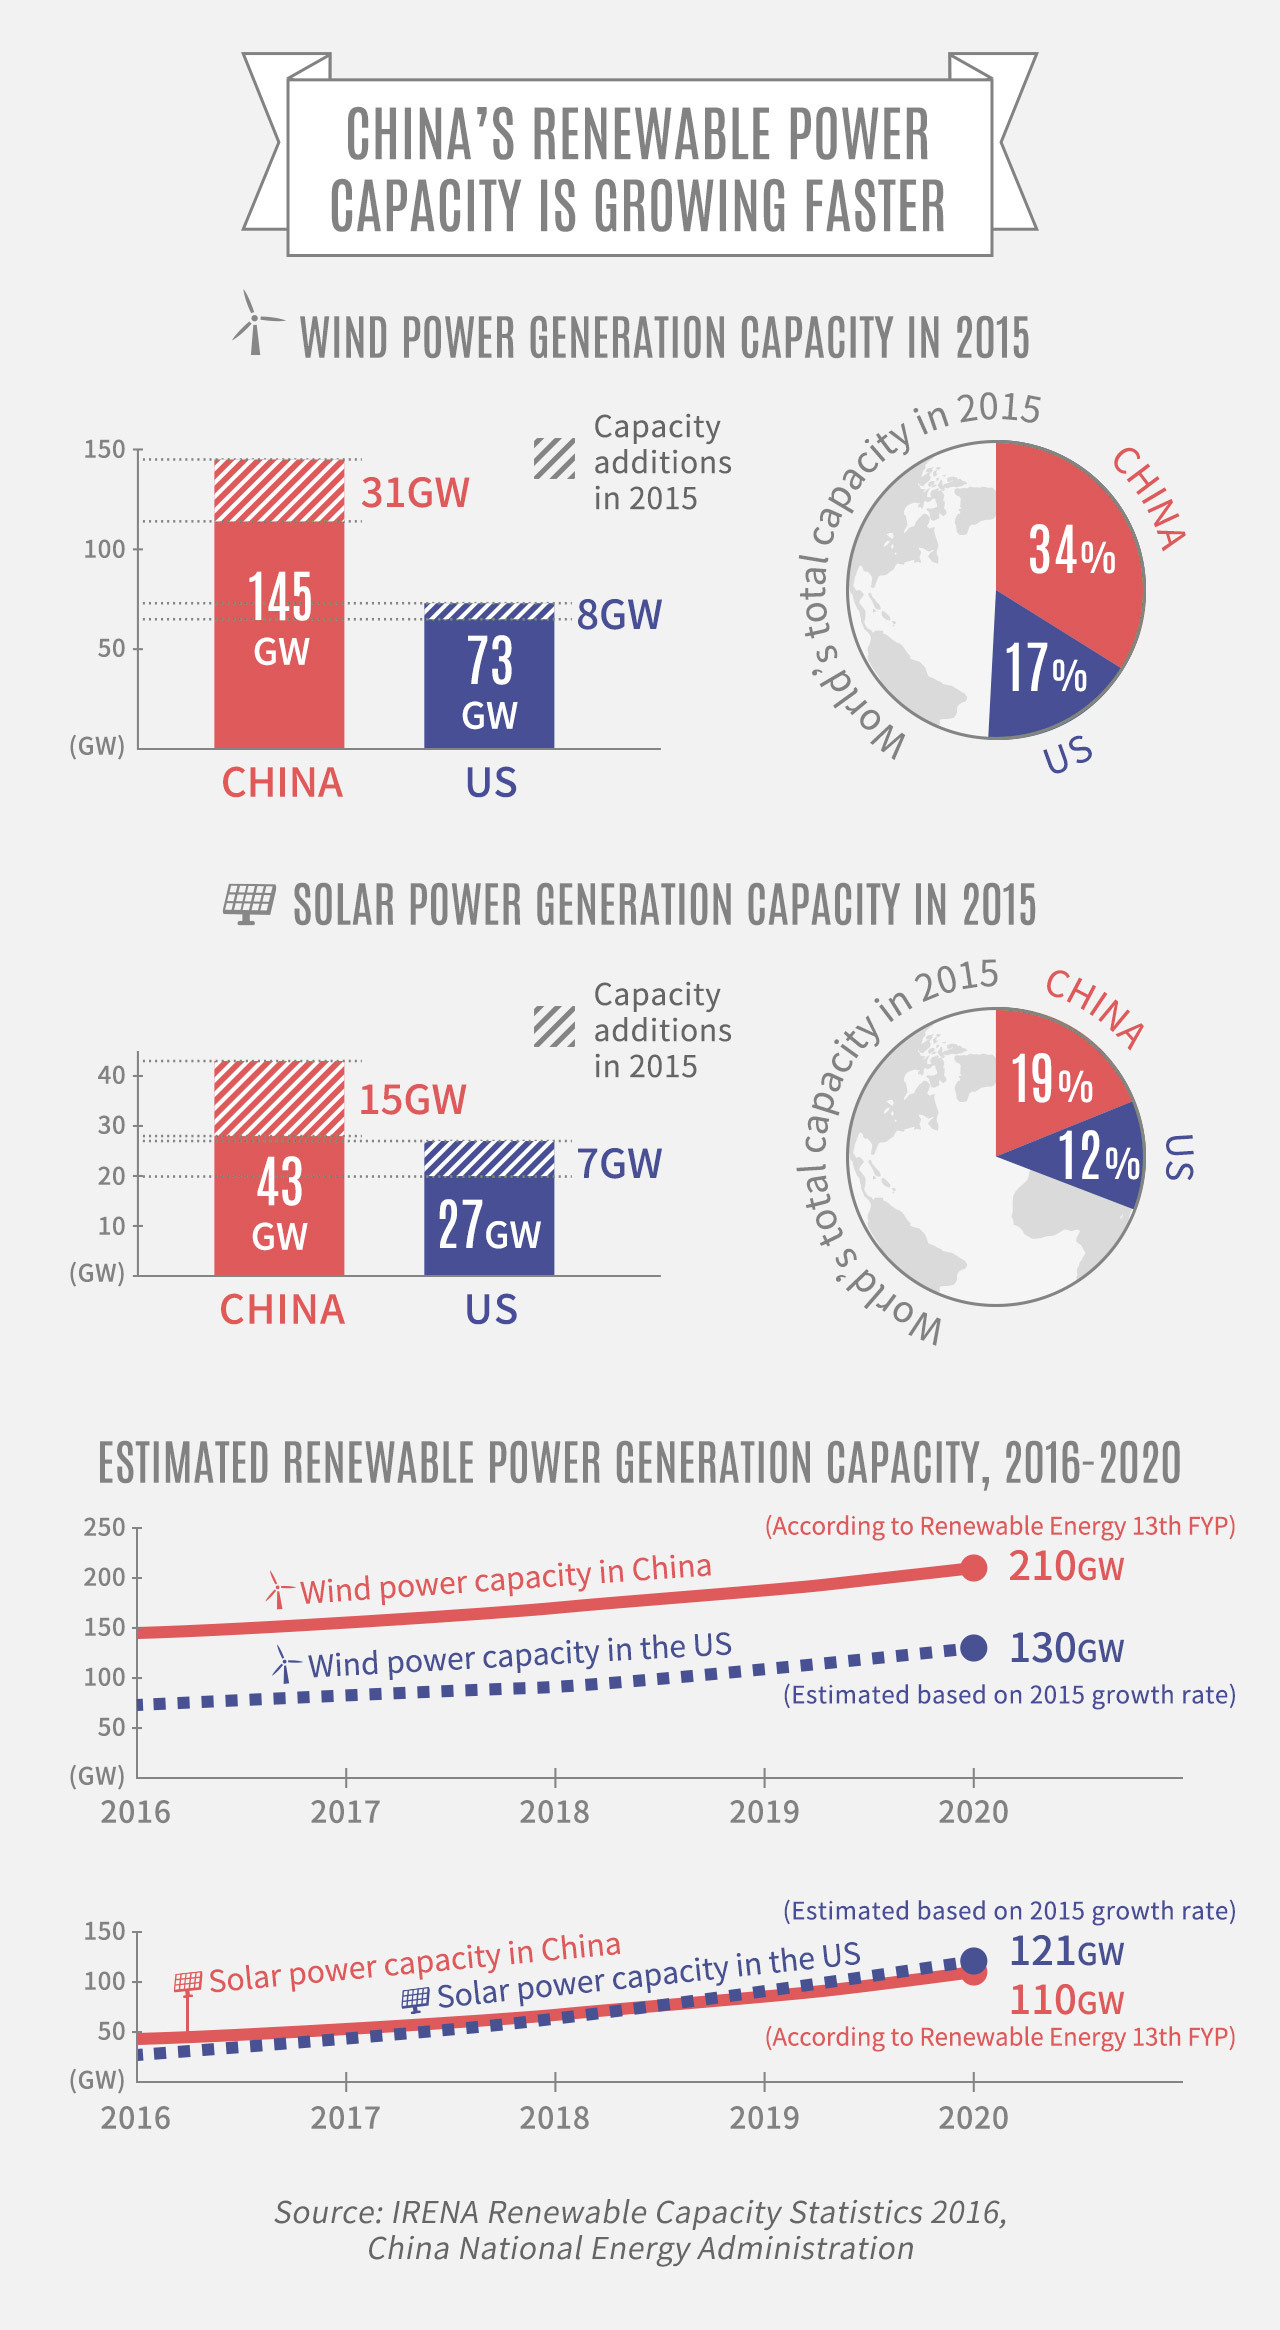 China's renewable power capacity is growing faster than the US